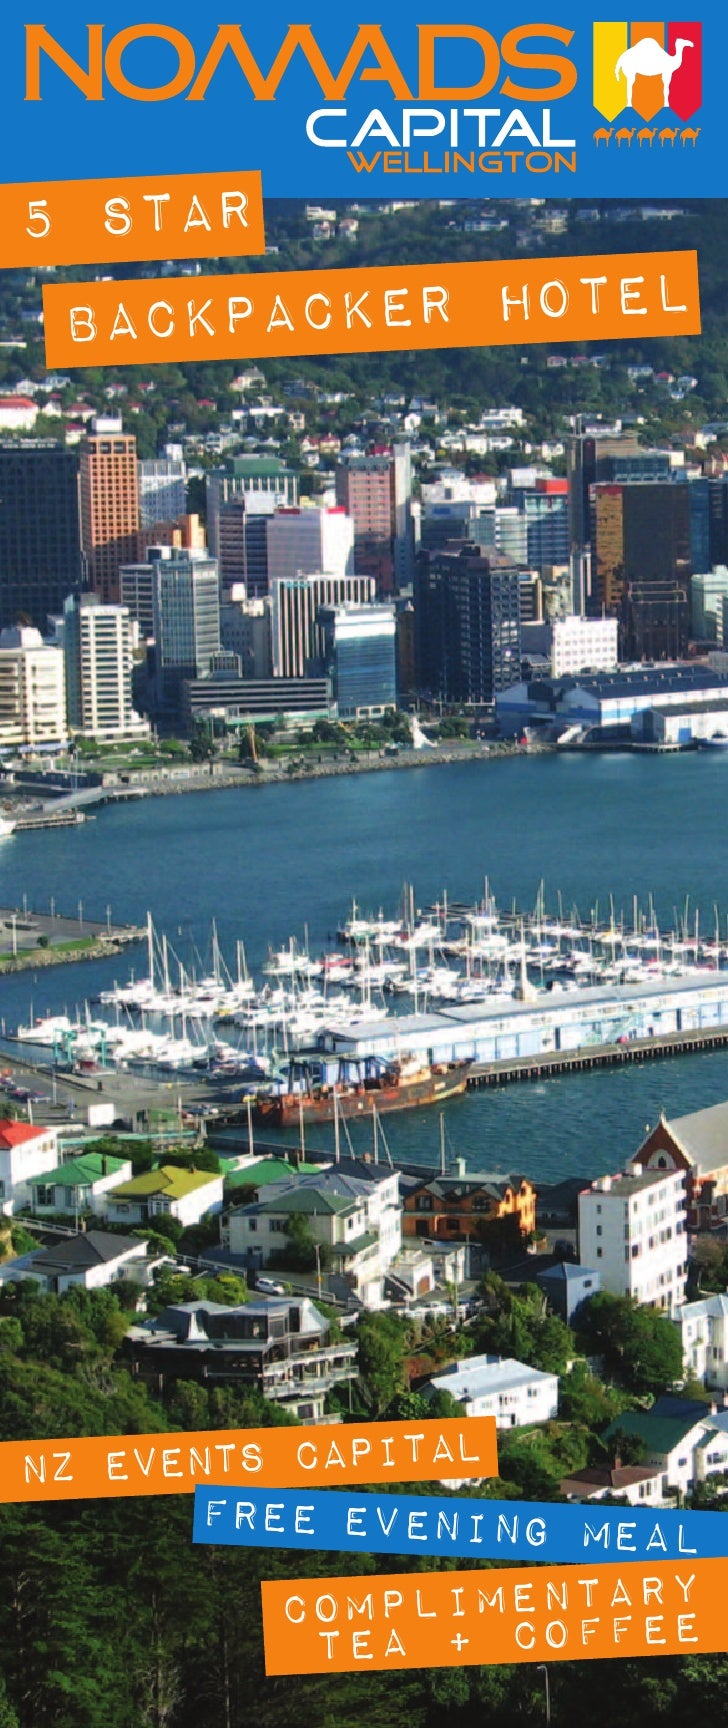 5 STAR  BACKPACKER HOTEL     NZ EVENTS CAPITAL        FREE EVENING MEAL           COMPLIMENTARY            TEA + COFFEE